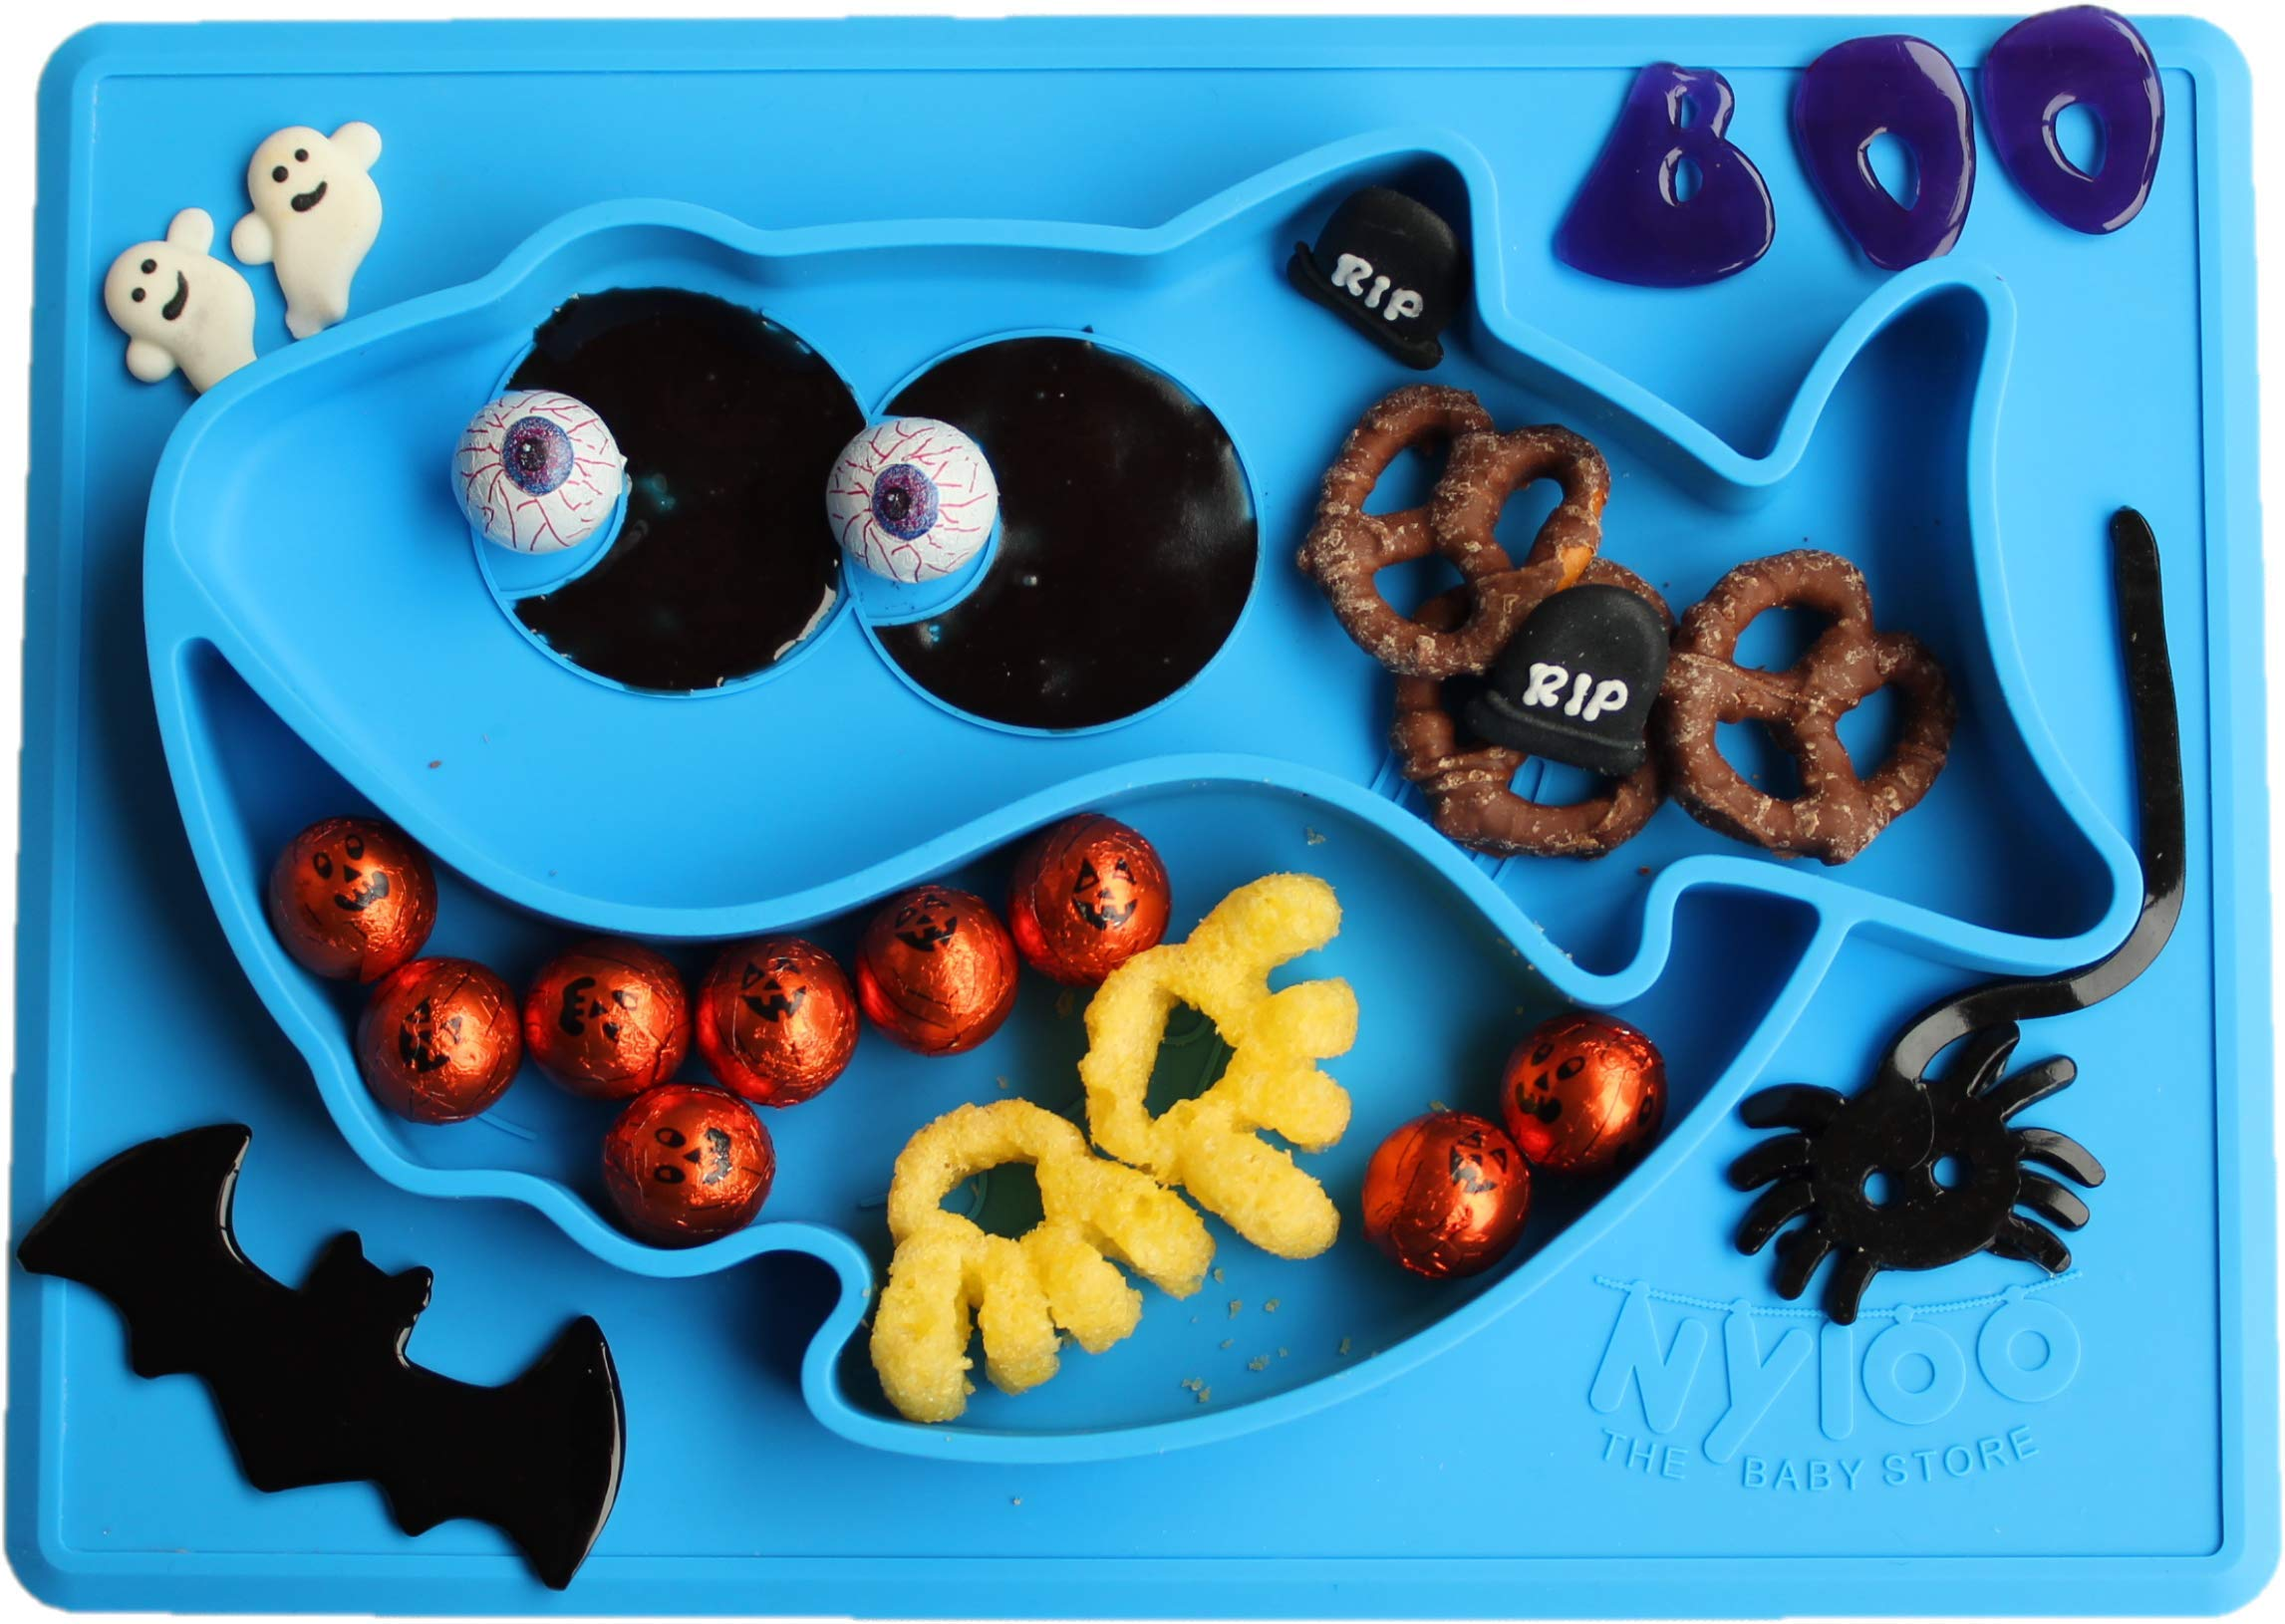 Baby Shark Halloween placemat/Plate by Nyloo -The Baby store, for Babies and Toddlers Over 6 Months, Blue, Made Out of FDA Approved Silicone by Nyloo - The Baby Store